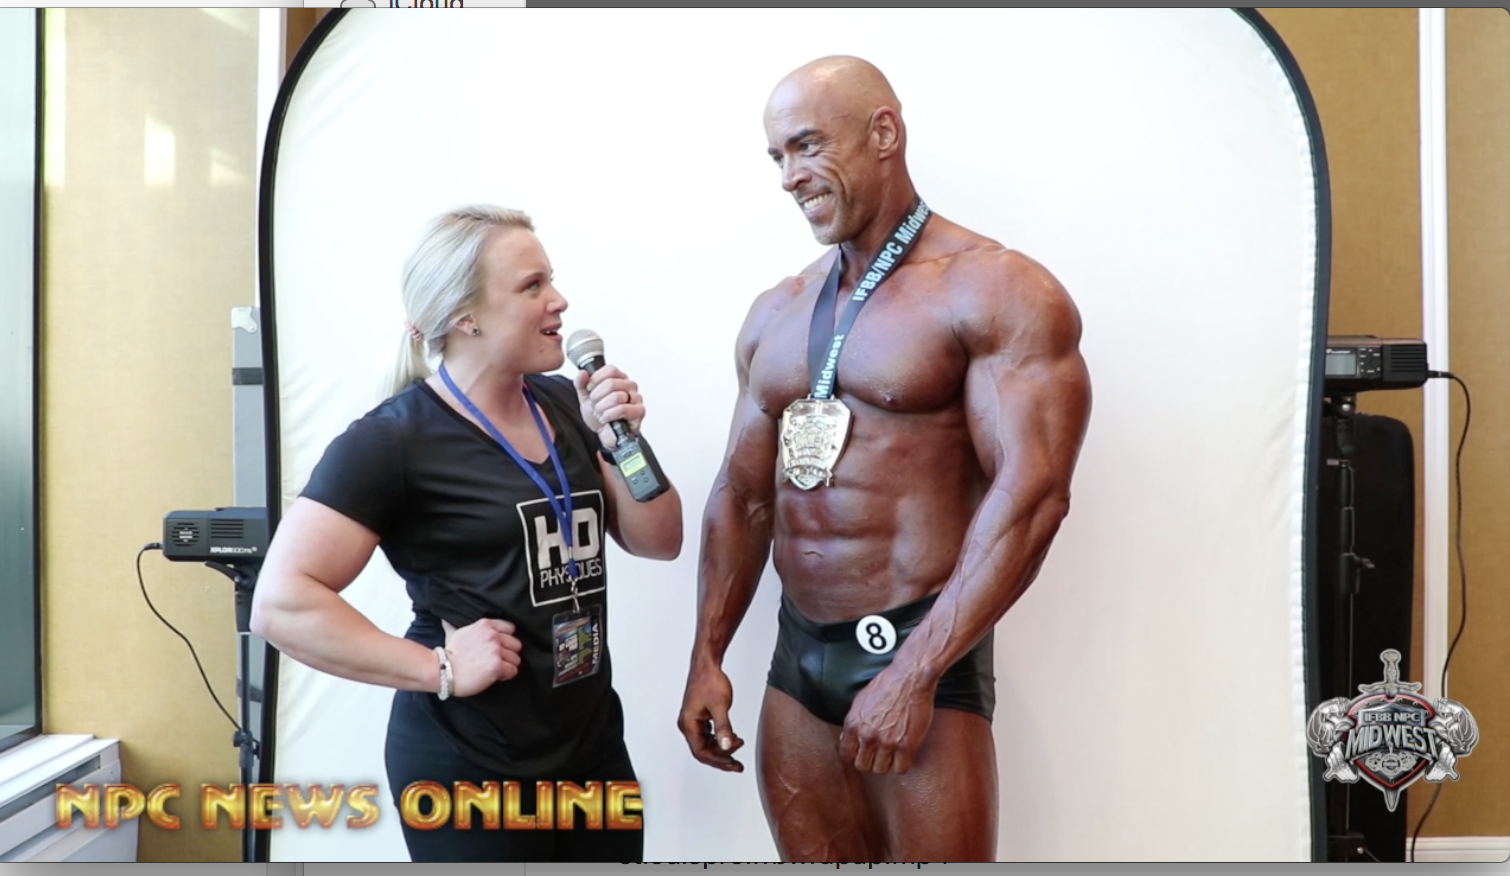 2018 IFBB 1st Phorm St.Louis Pro Masters Classic Physique Winner Aaron Sparenberg